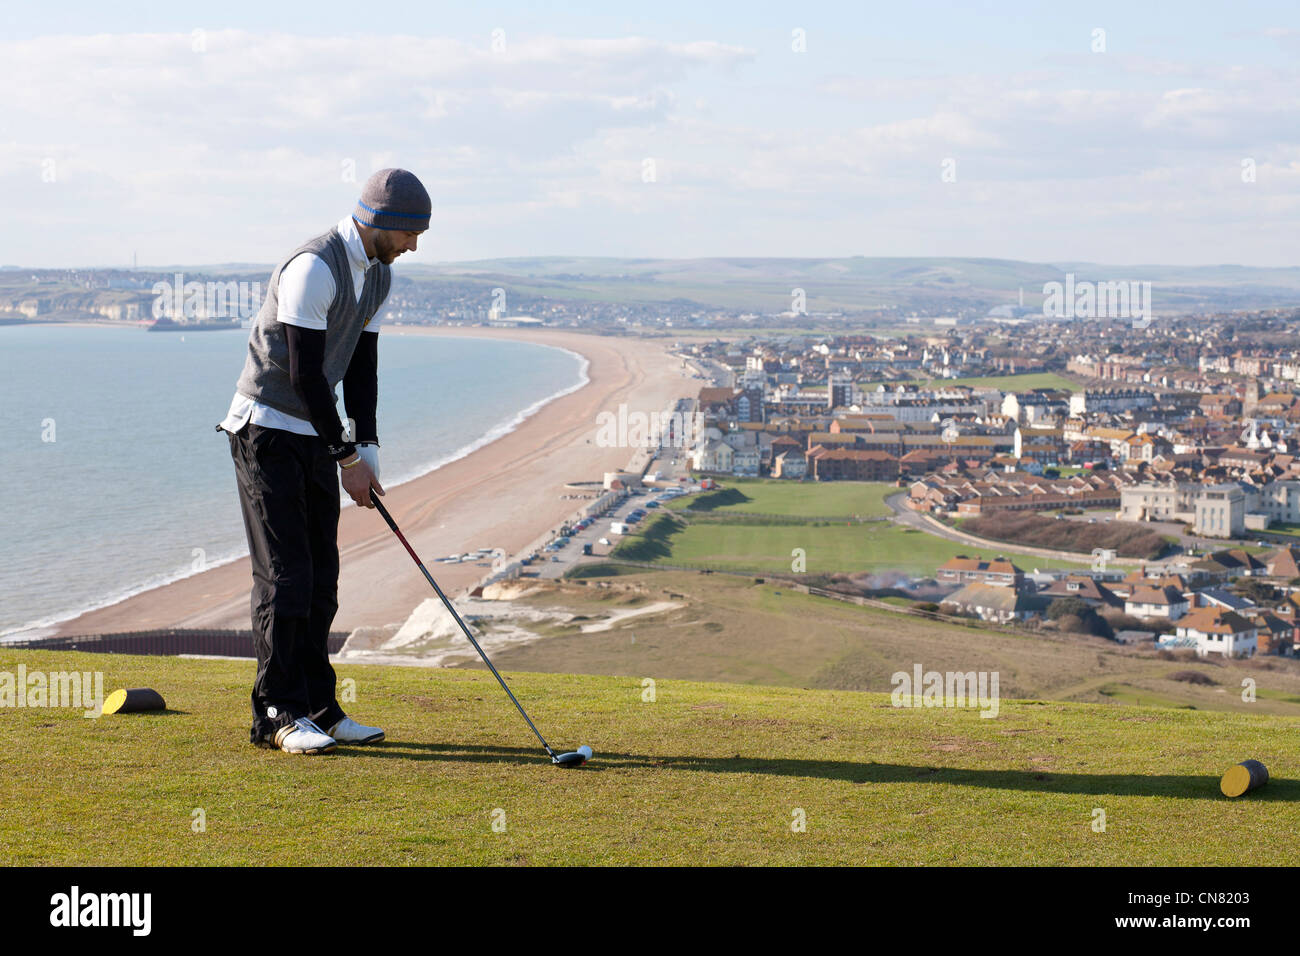 A golfer gets ready to tee off on the 18th hole at Seaford Head golf course East Sussex looking towards Tidemills - Stock Image